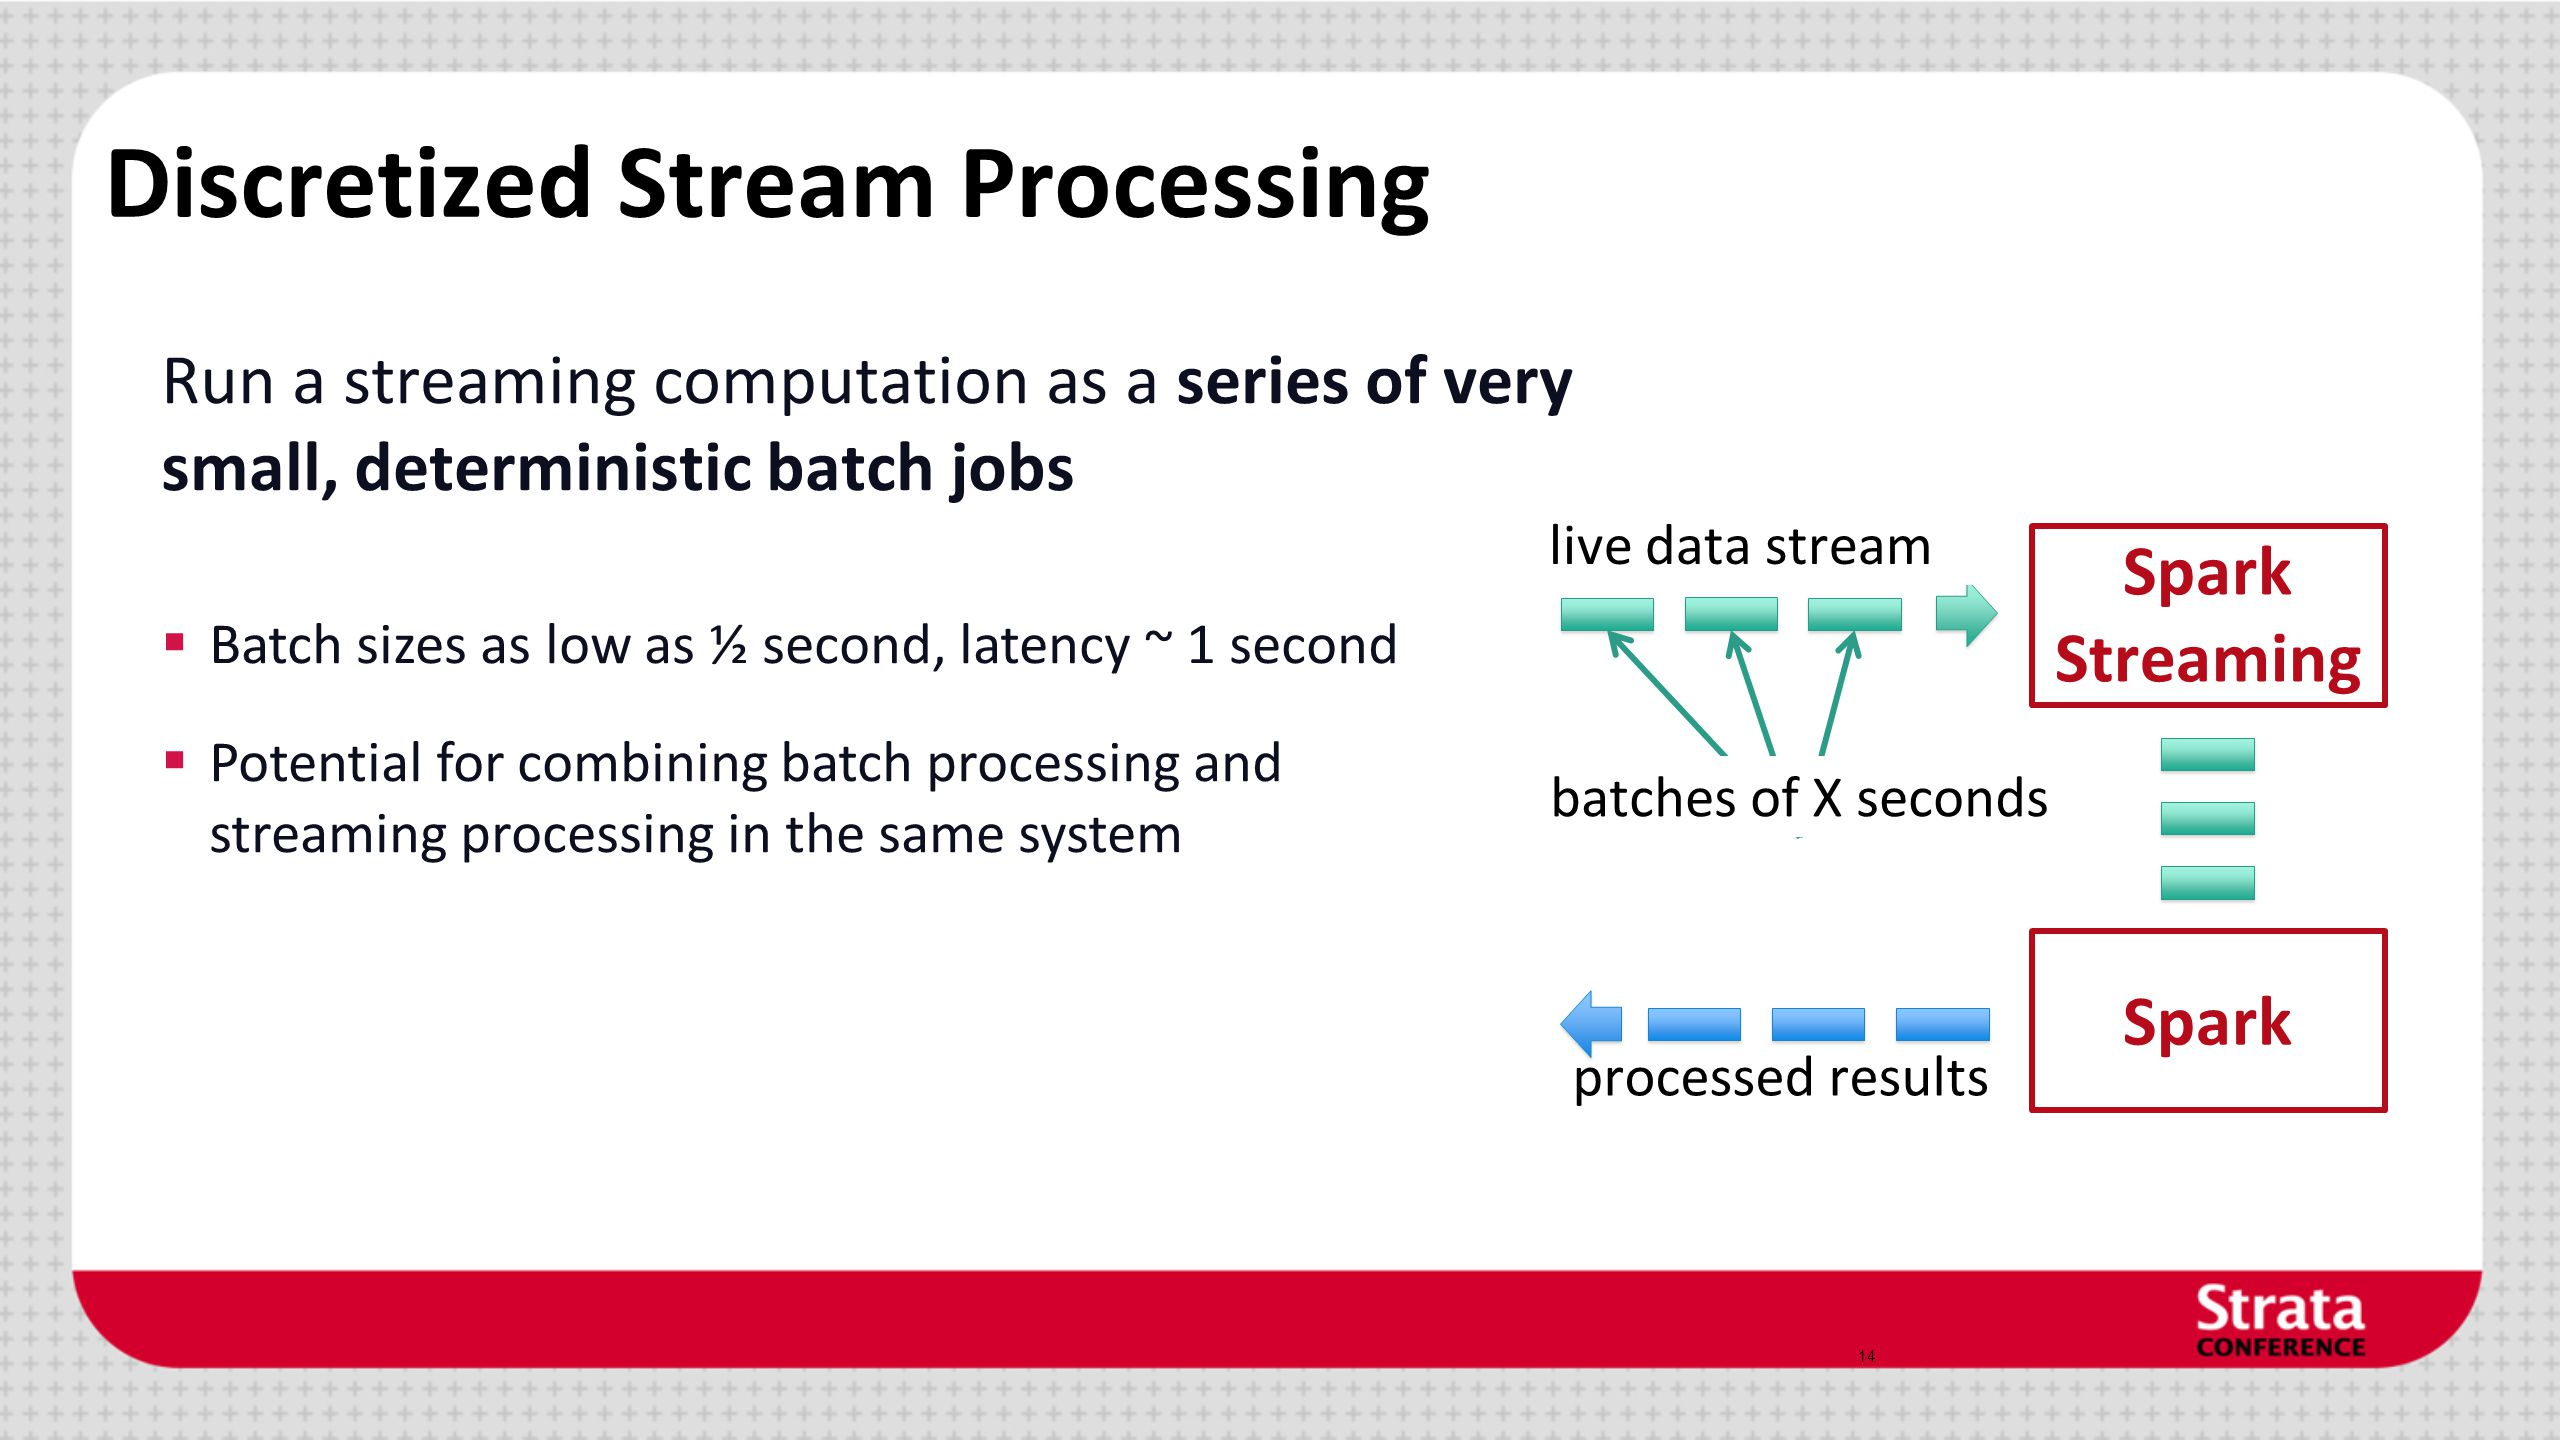 Discretized Stream Processing Run a streaming computation as a series of very small, deterministic batch jobs 14 Spark Streaming batches of X seconds live data stream processed results  Batch sizes as low as ½ second, latency ~ 1 second  Potential for combining batch processing and streaming processing in the same system